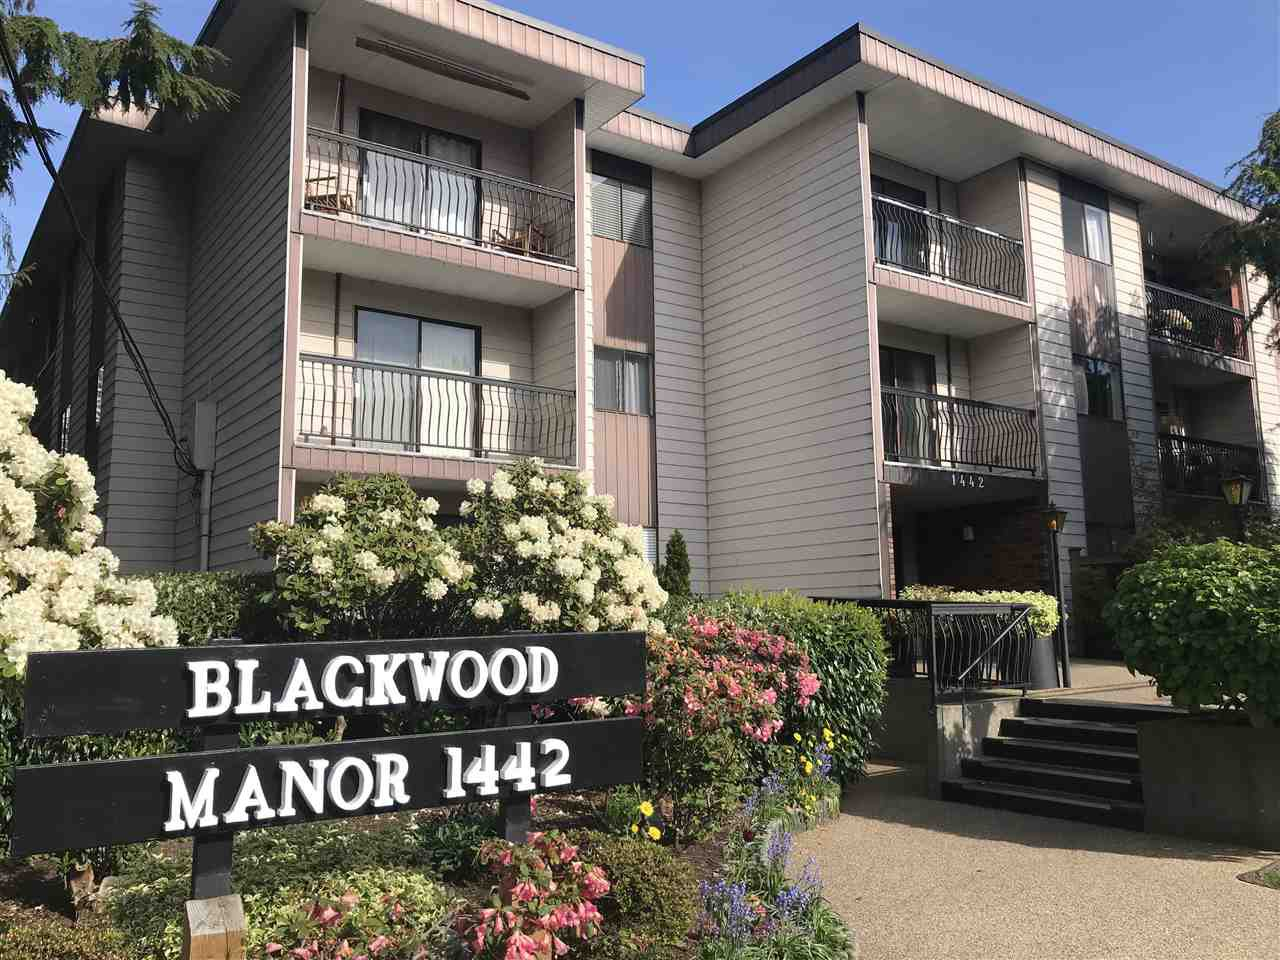 "Main Photo: 308 1442 BLACKWOOD Street: White Rock Condo for sale in ""Blackwood Manor"" (South Surrey White Rock)  : MLS®# R2364535"